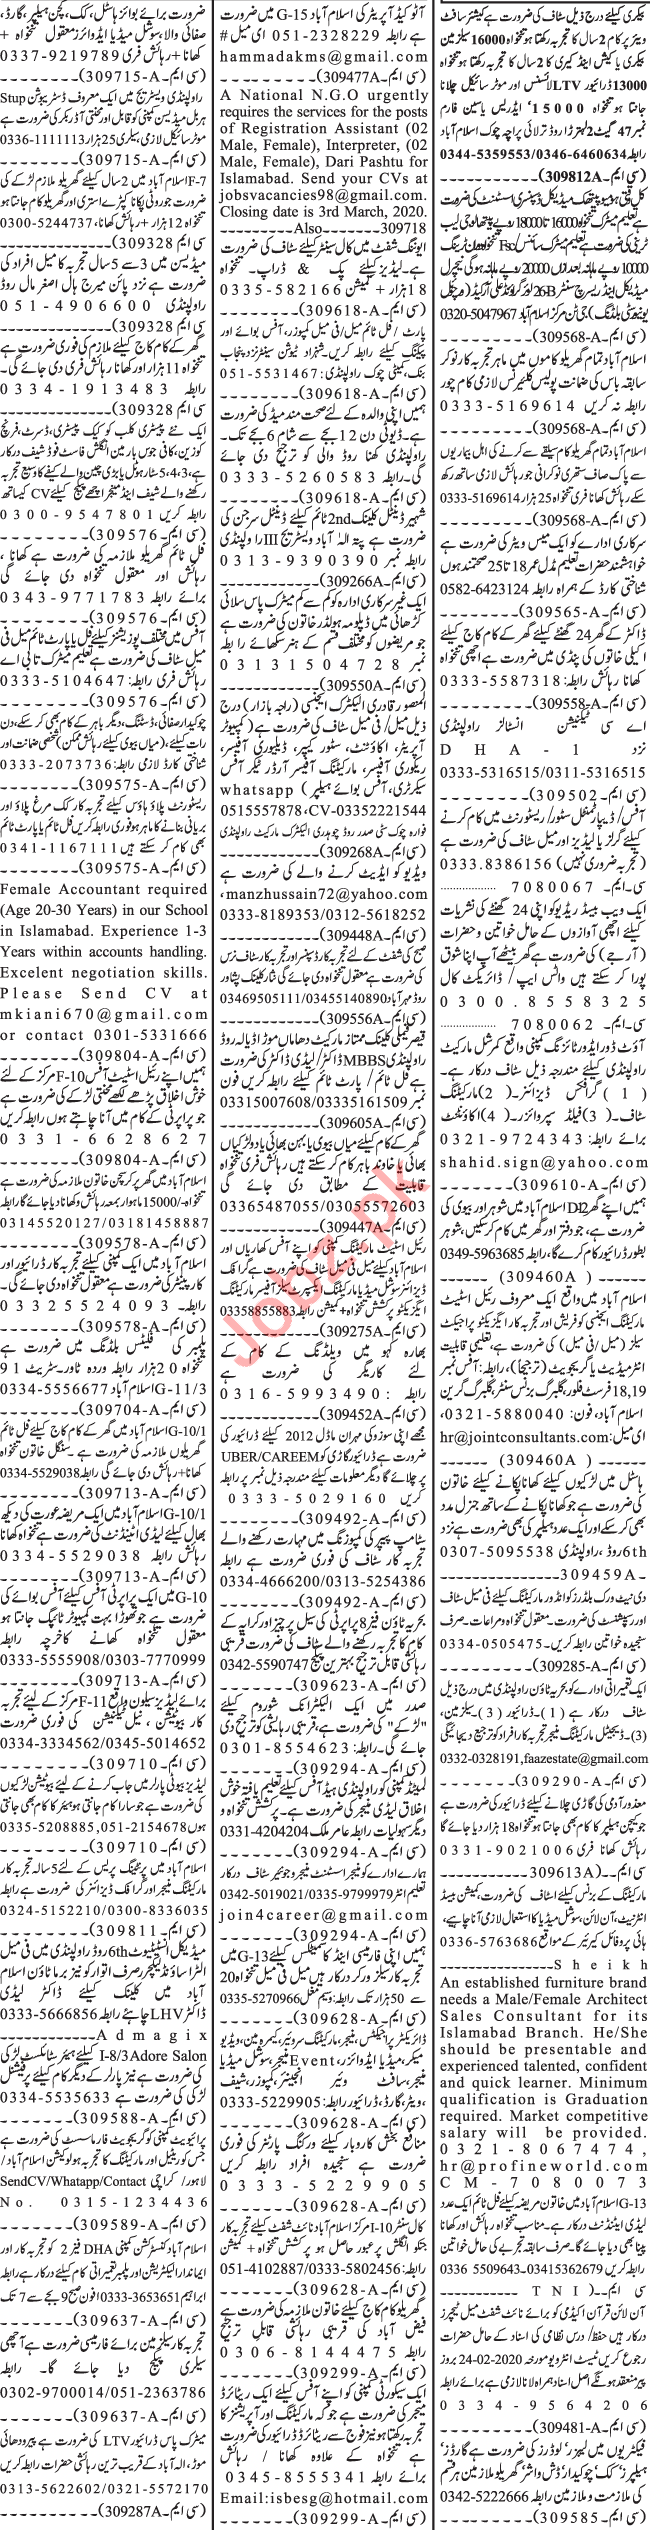 Jang Sunday Classified Ads 23rd Feb 2020 for Admin Staff